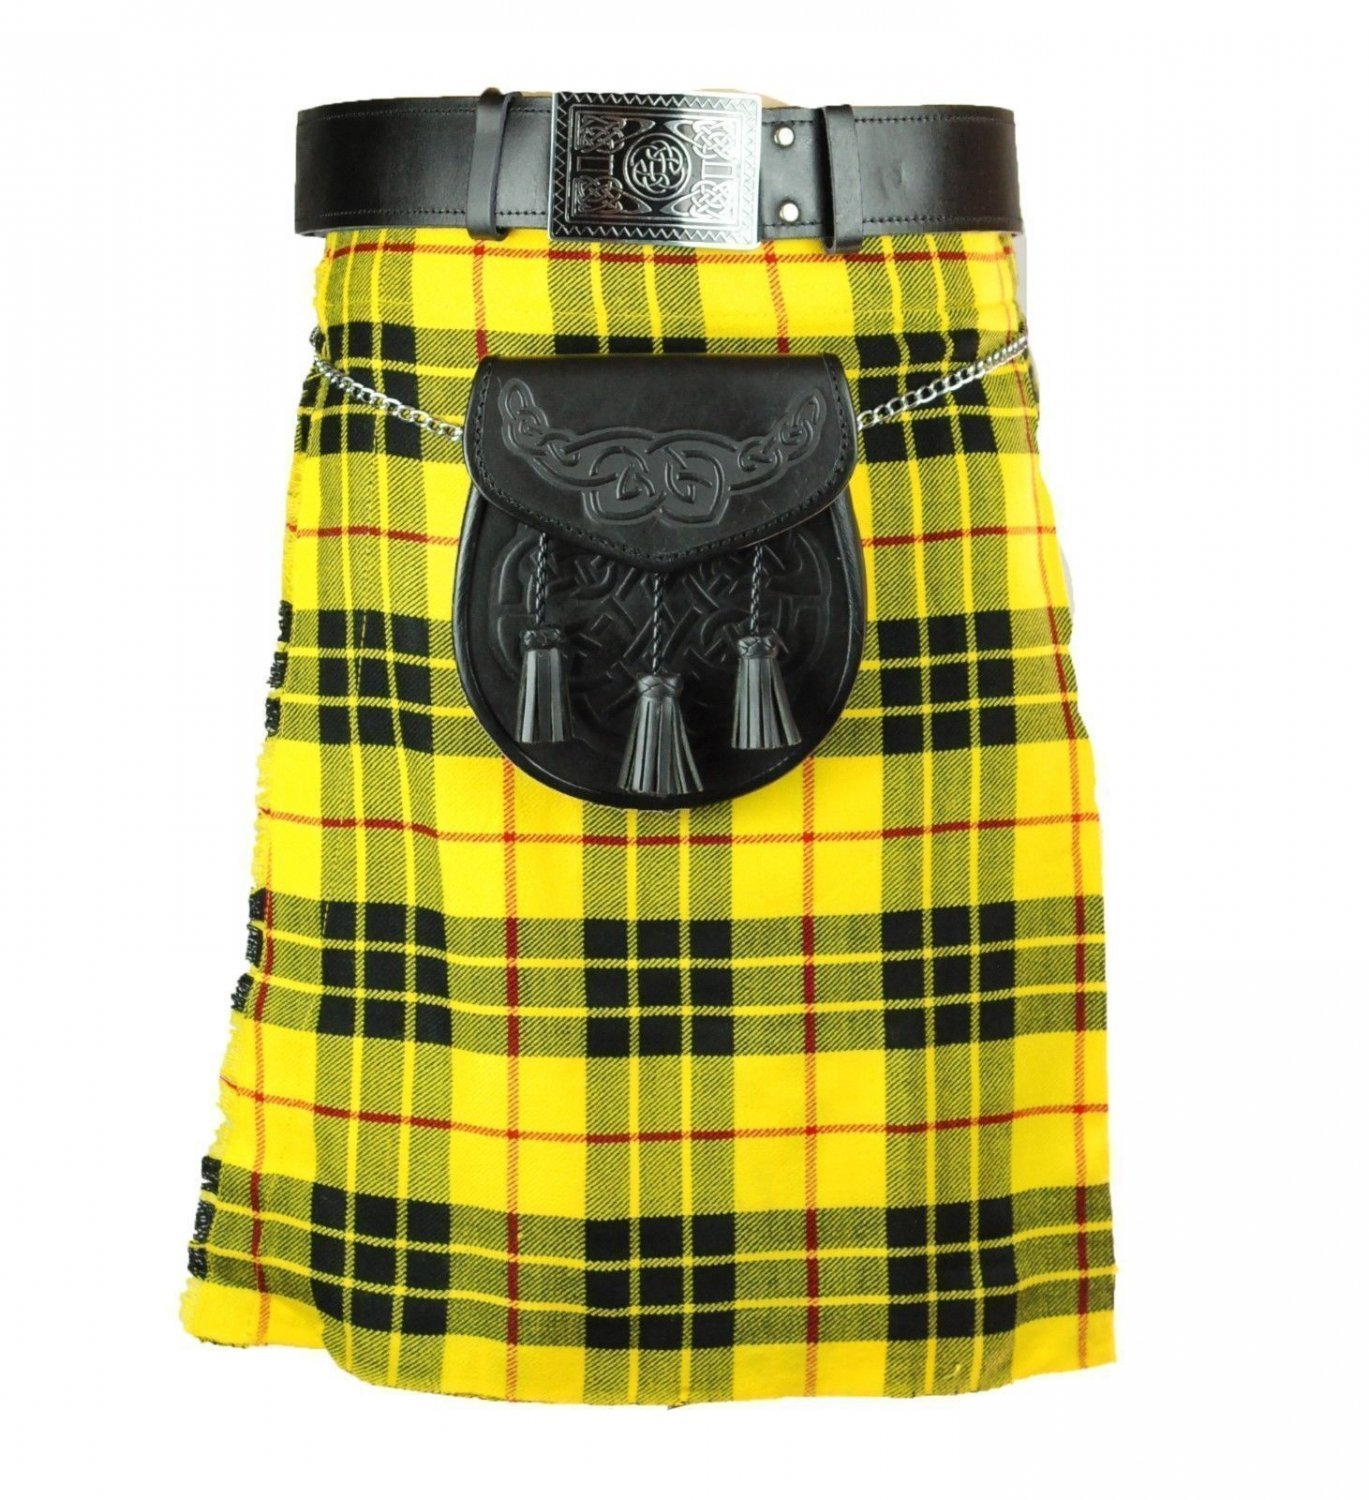 Deluxe Scottish Highland Utility Sports, Traditional Macleod of Lewis Tartan Kilts to Set 32Size